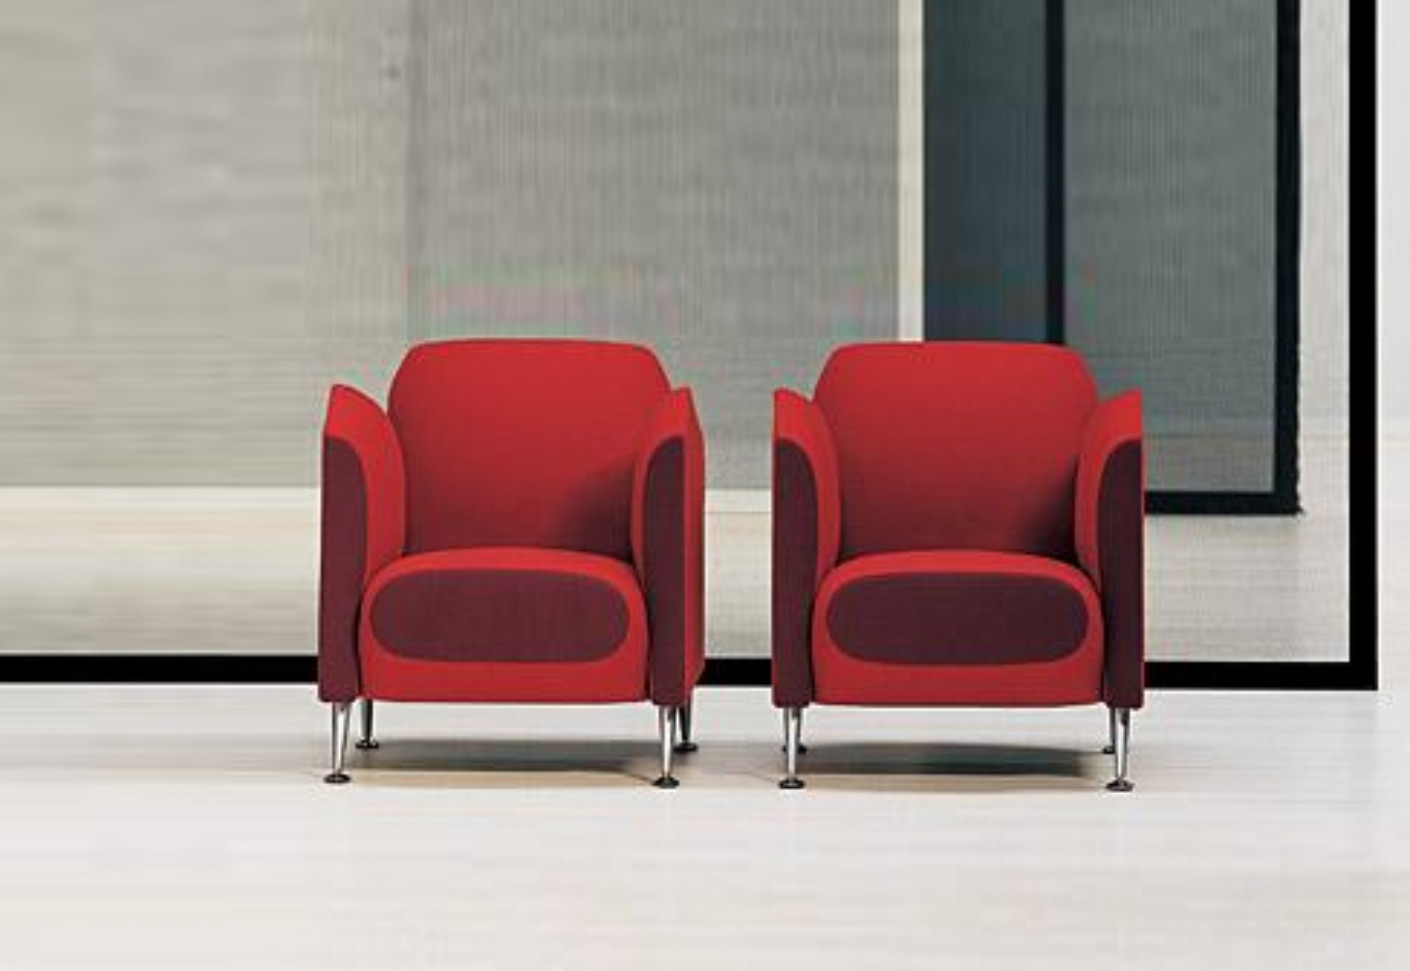 Los Muebles Amorosos Hotel 21 Poltroncina Lounge By Moroso  # Hot Week Muebles